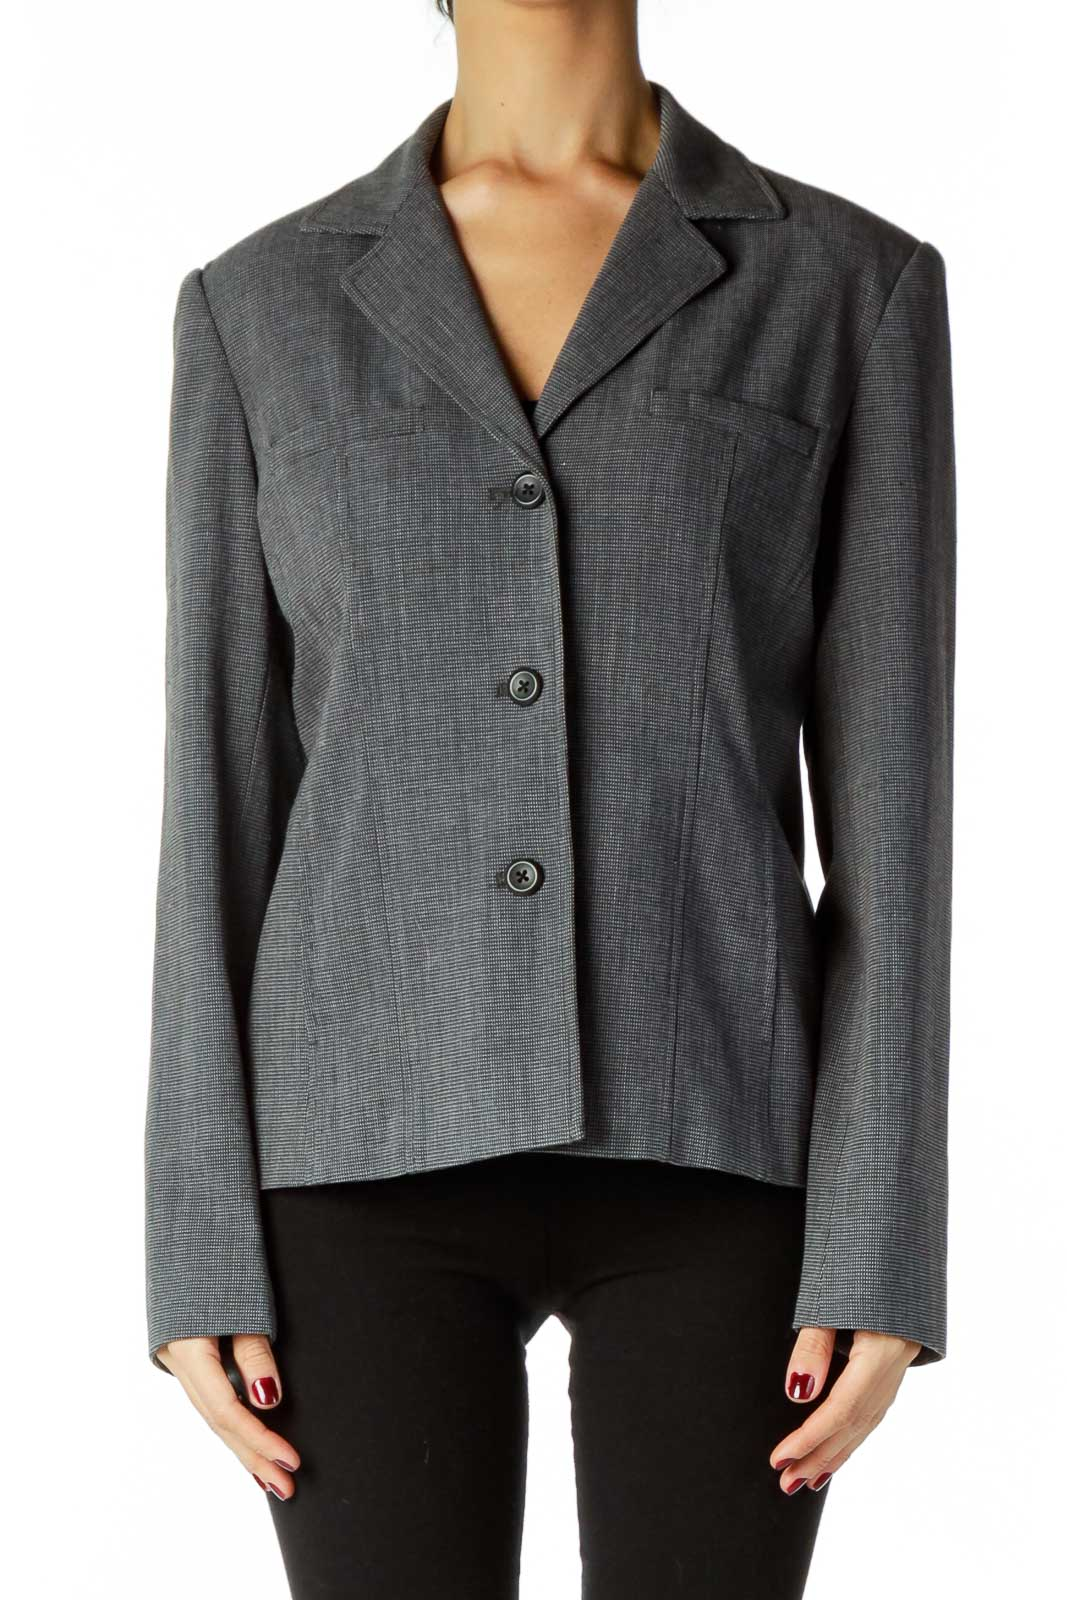 Black Gray Blazer